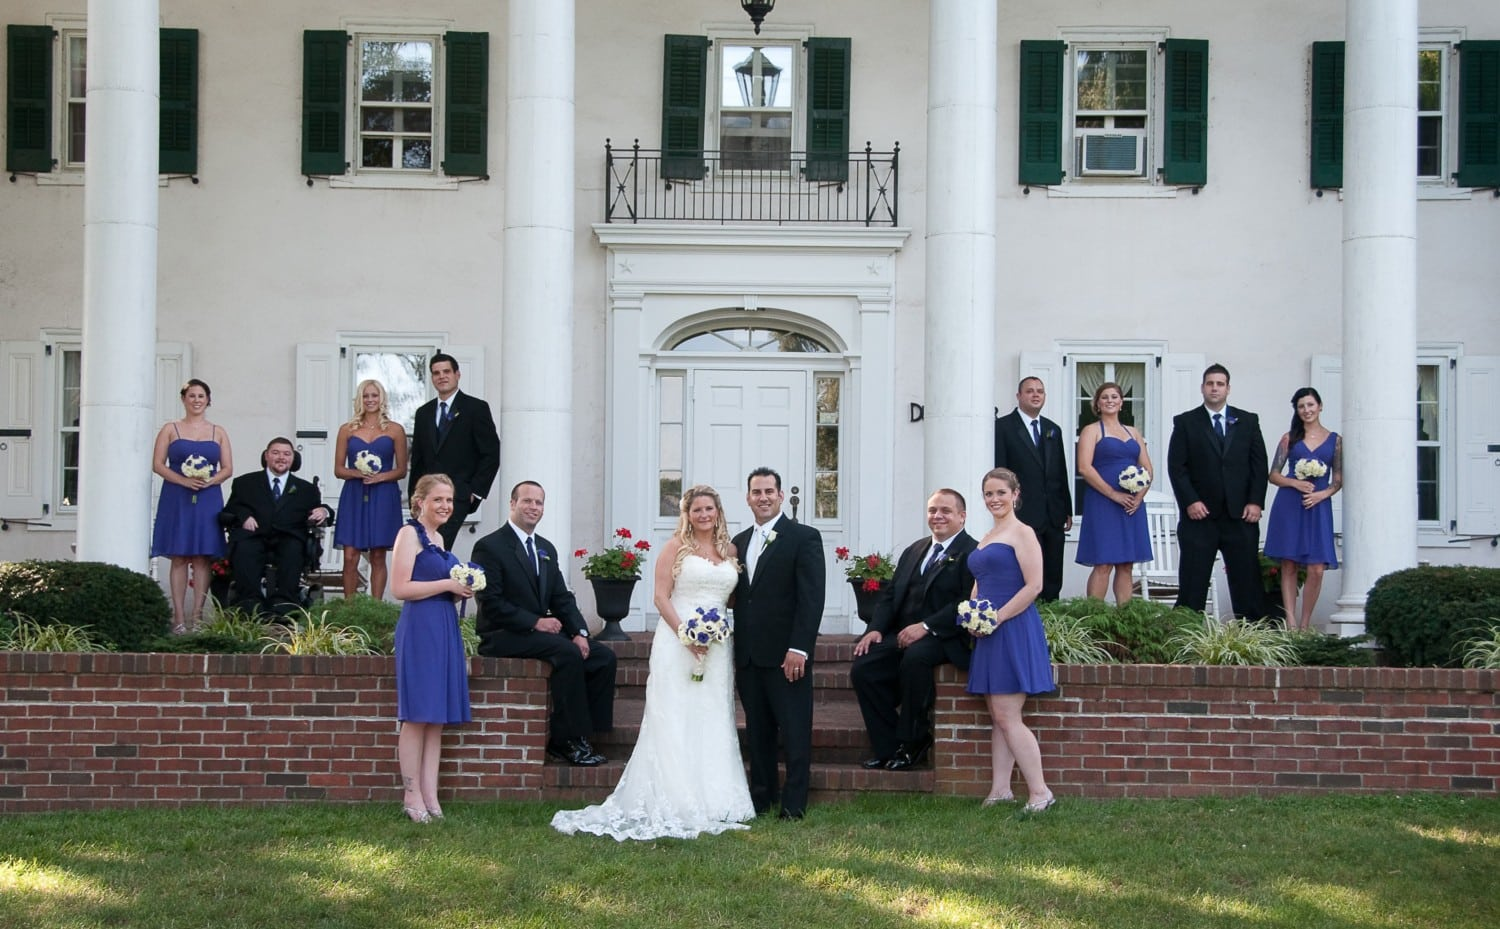 large group wedding photography in front of colonial home